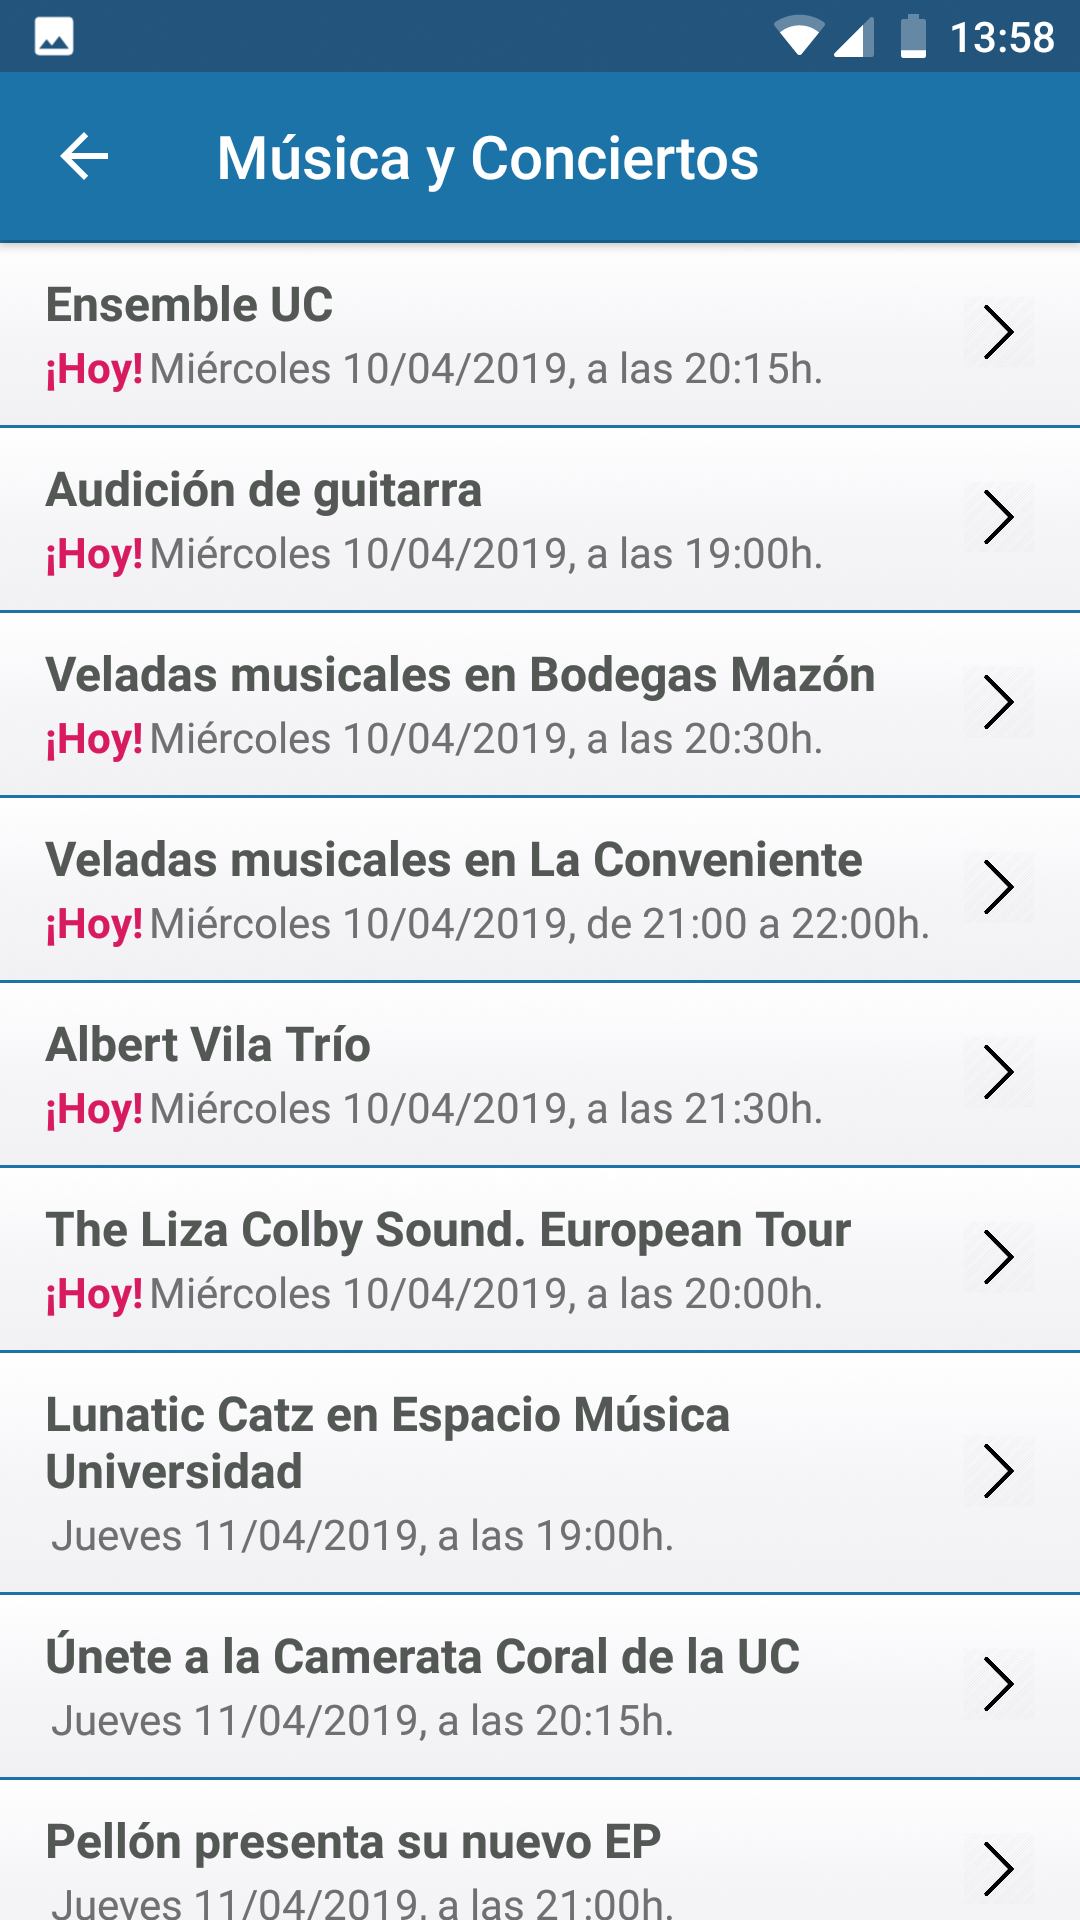 http://datos.santander.es/wp-content/uploads/2019/04/Screenshot_20190410-135837_1.png